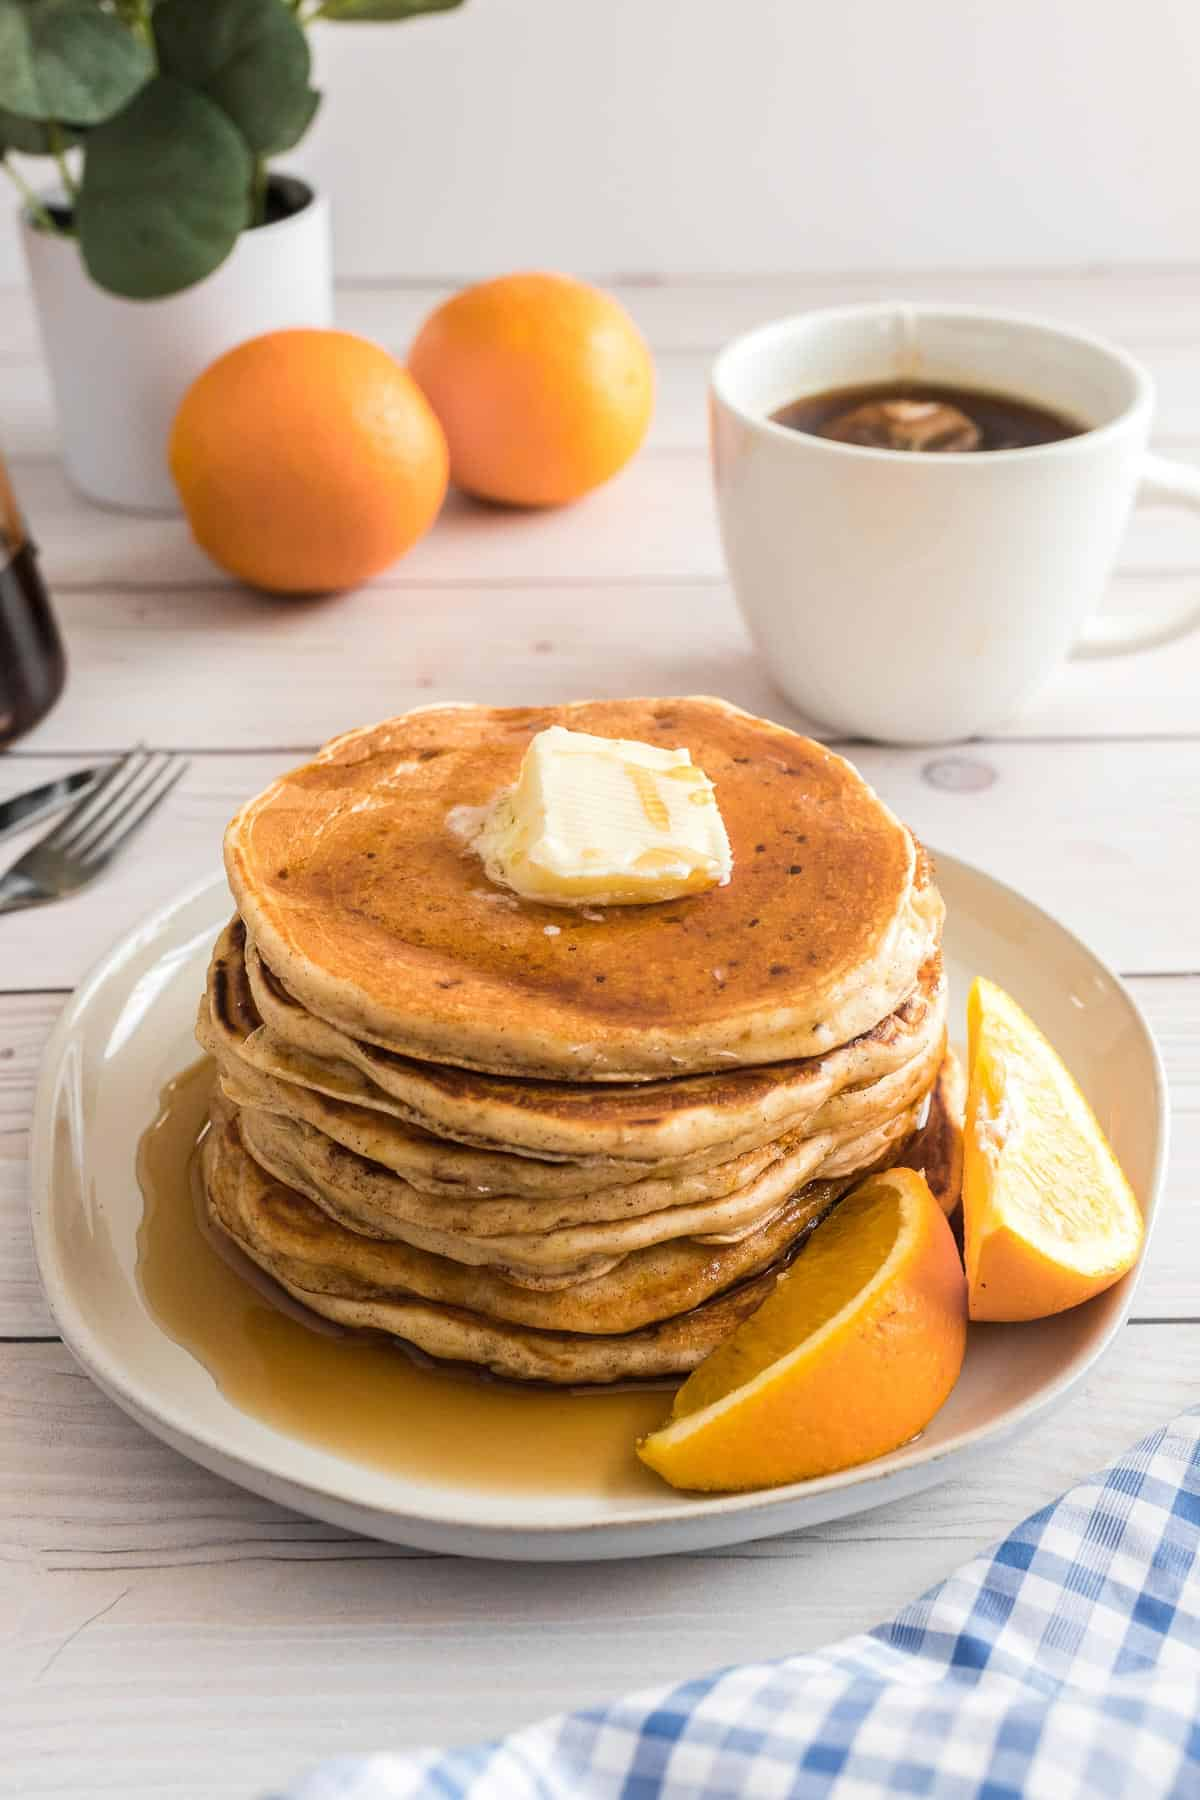 Pancakes and syrup on a plate with orange wedges, coffee and oranges in the background.